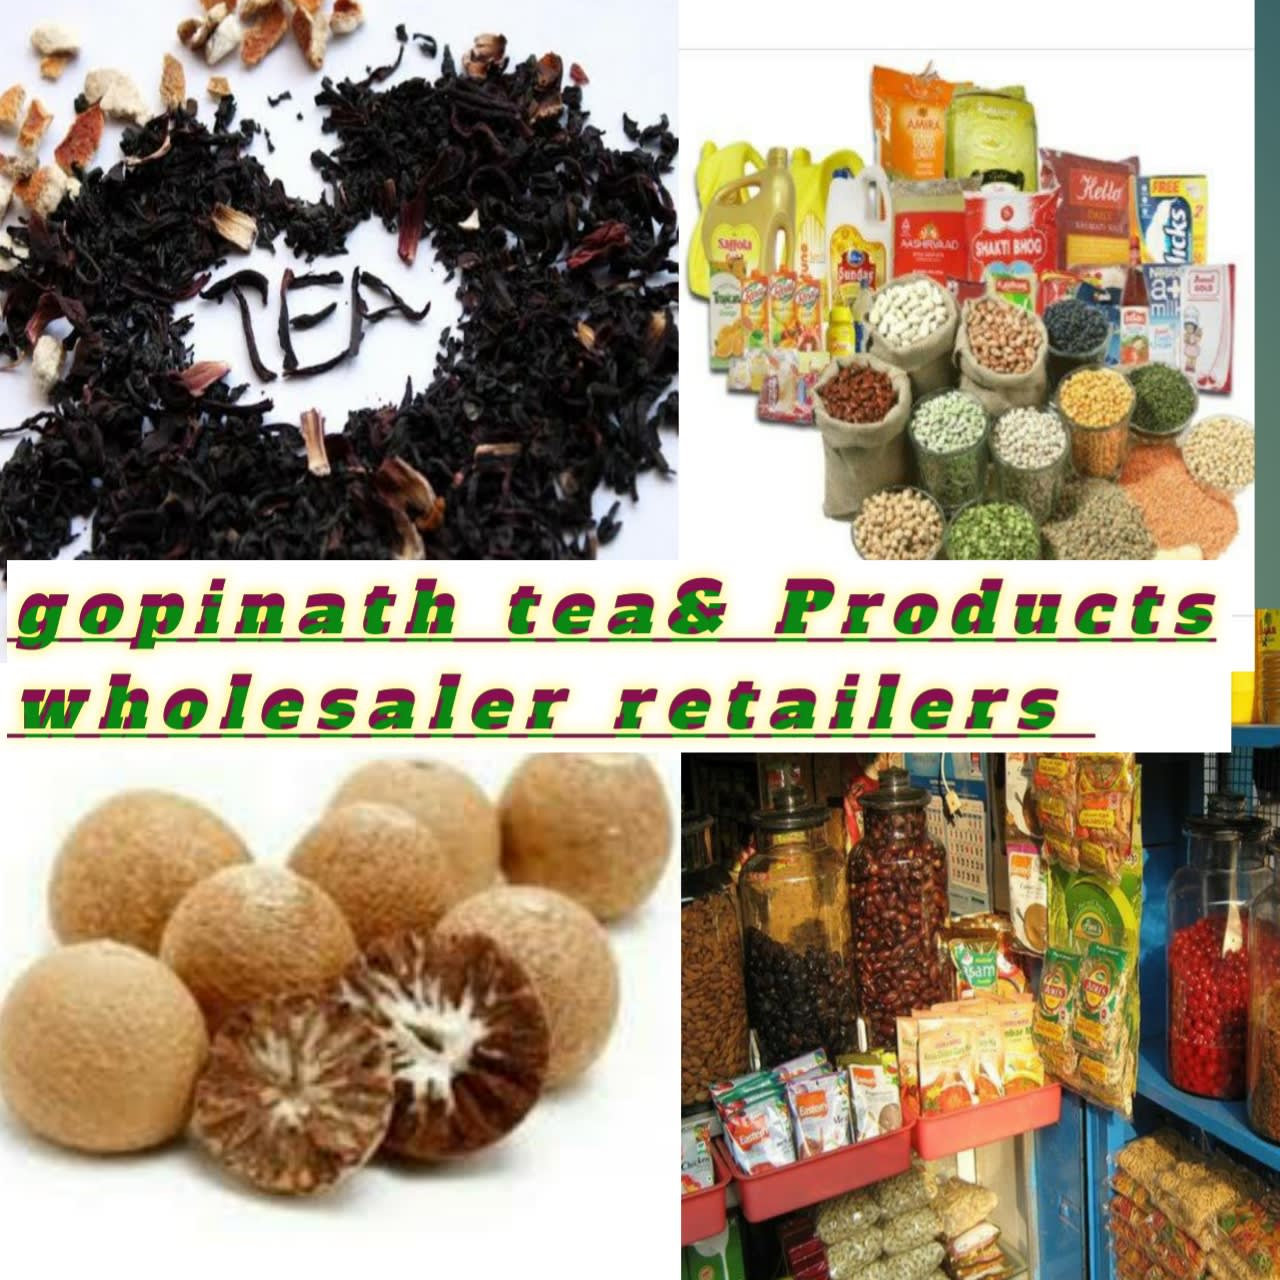 Gopinath tea& Products